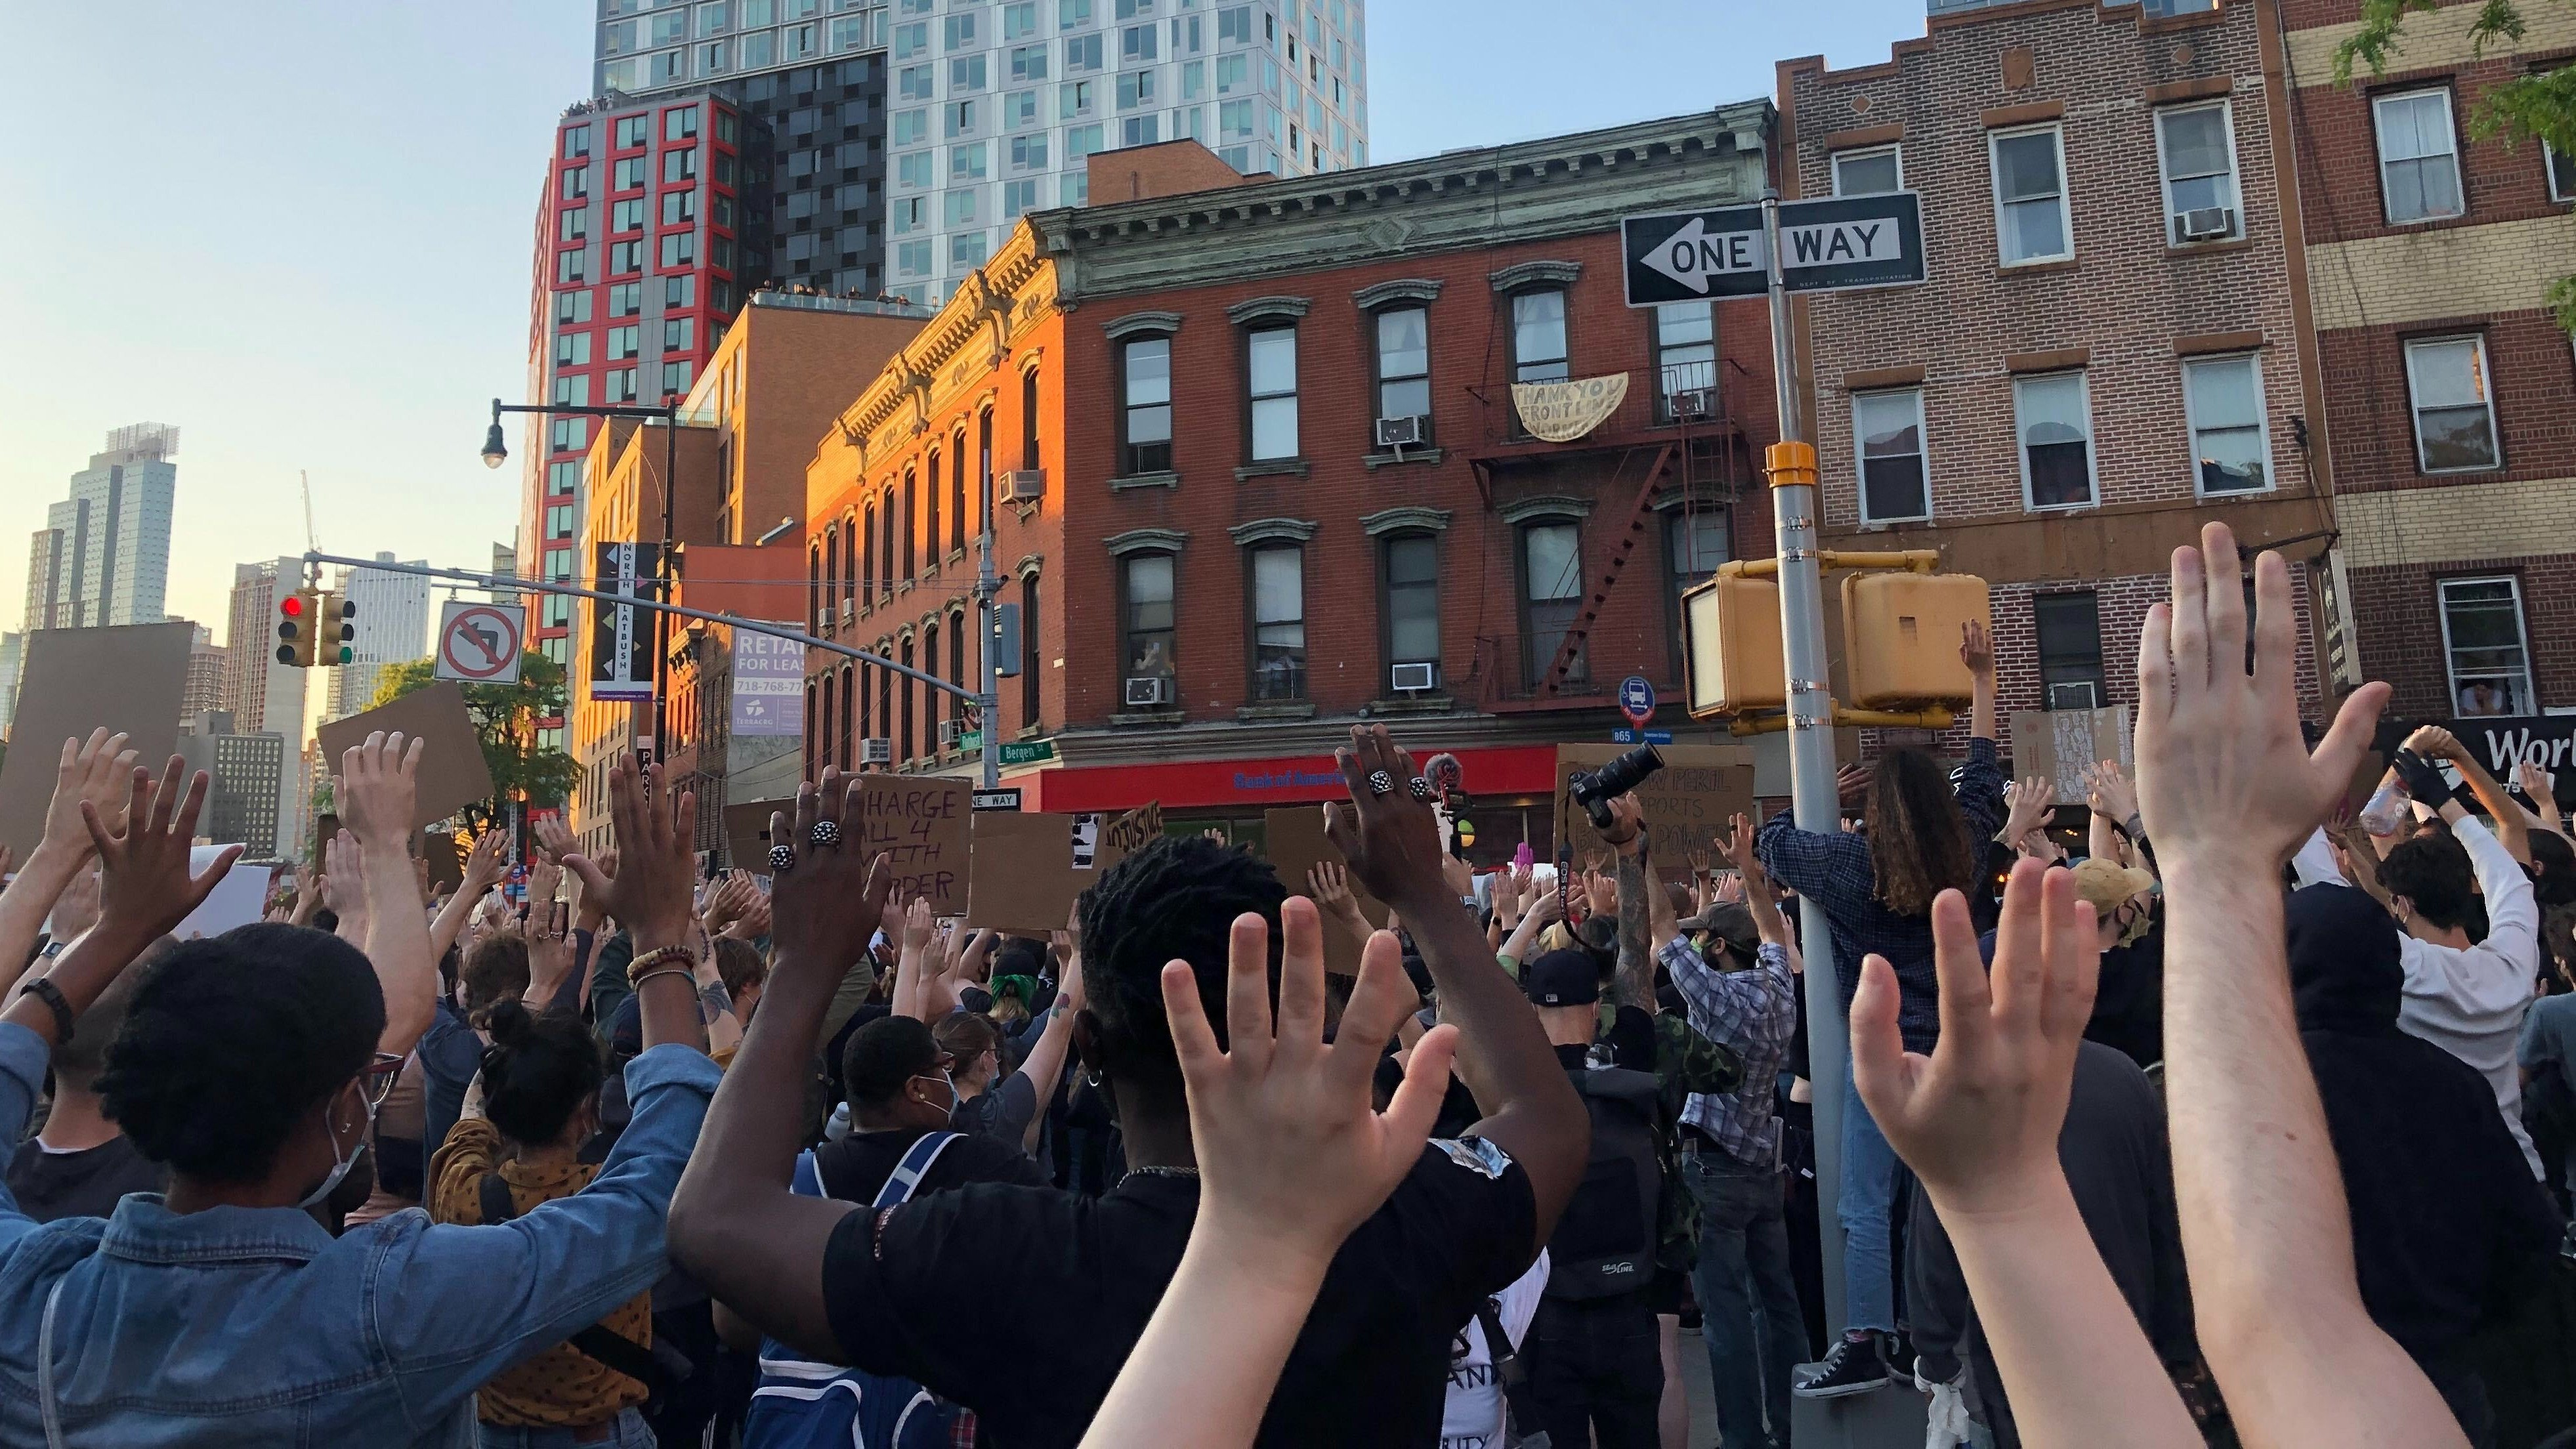 Protestors at a George Floyd action in Brooklyn raise their hands